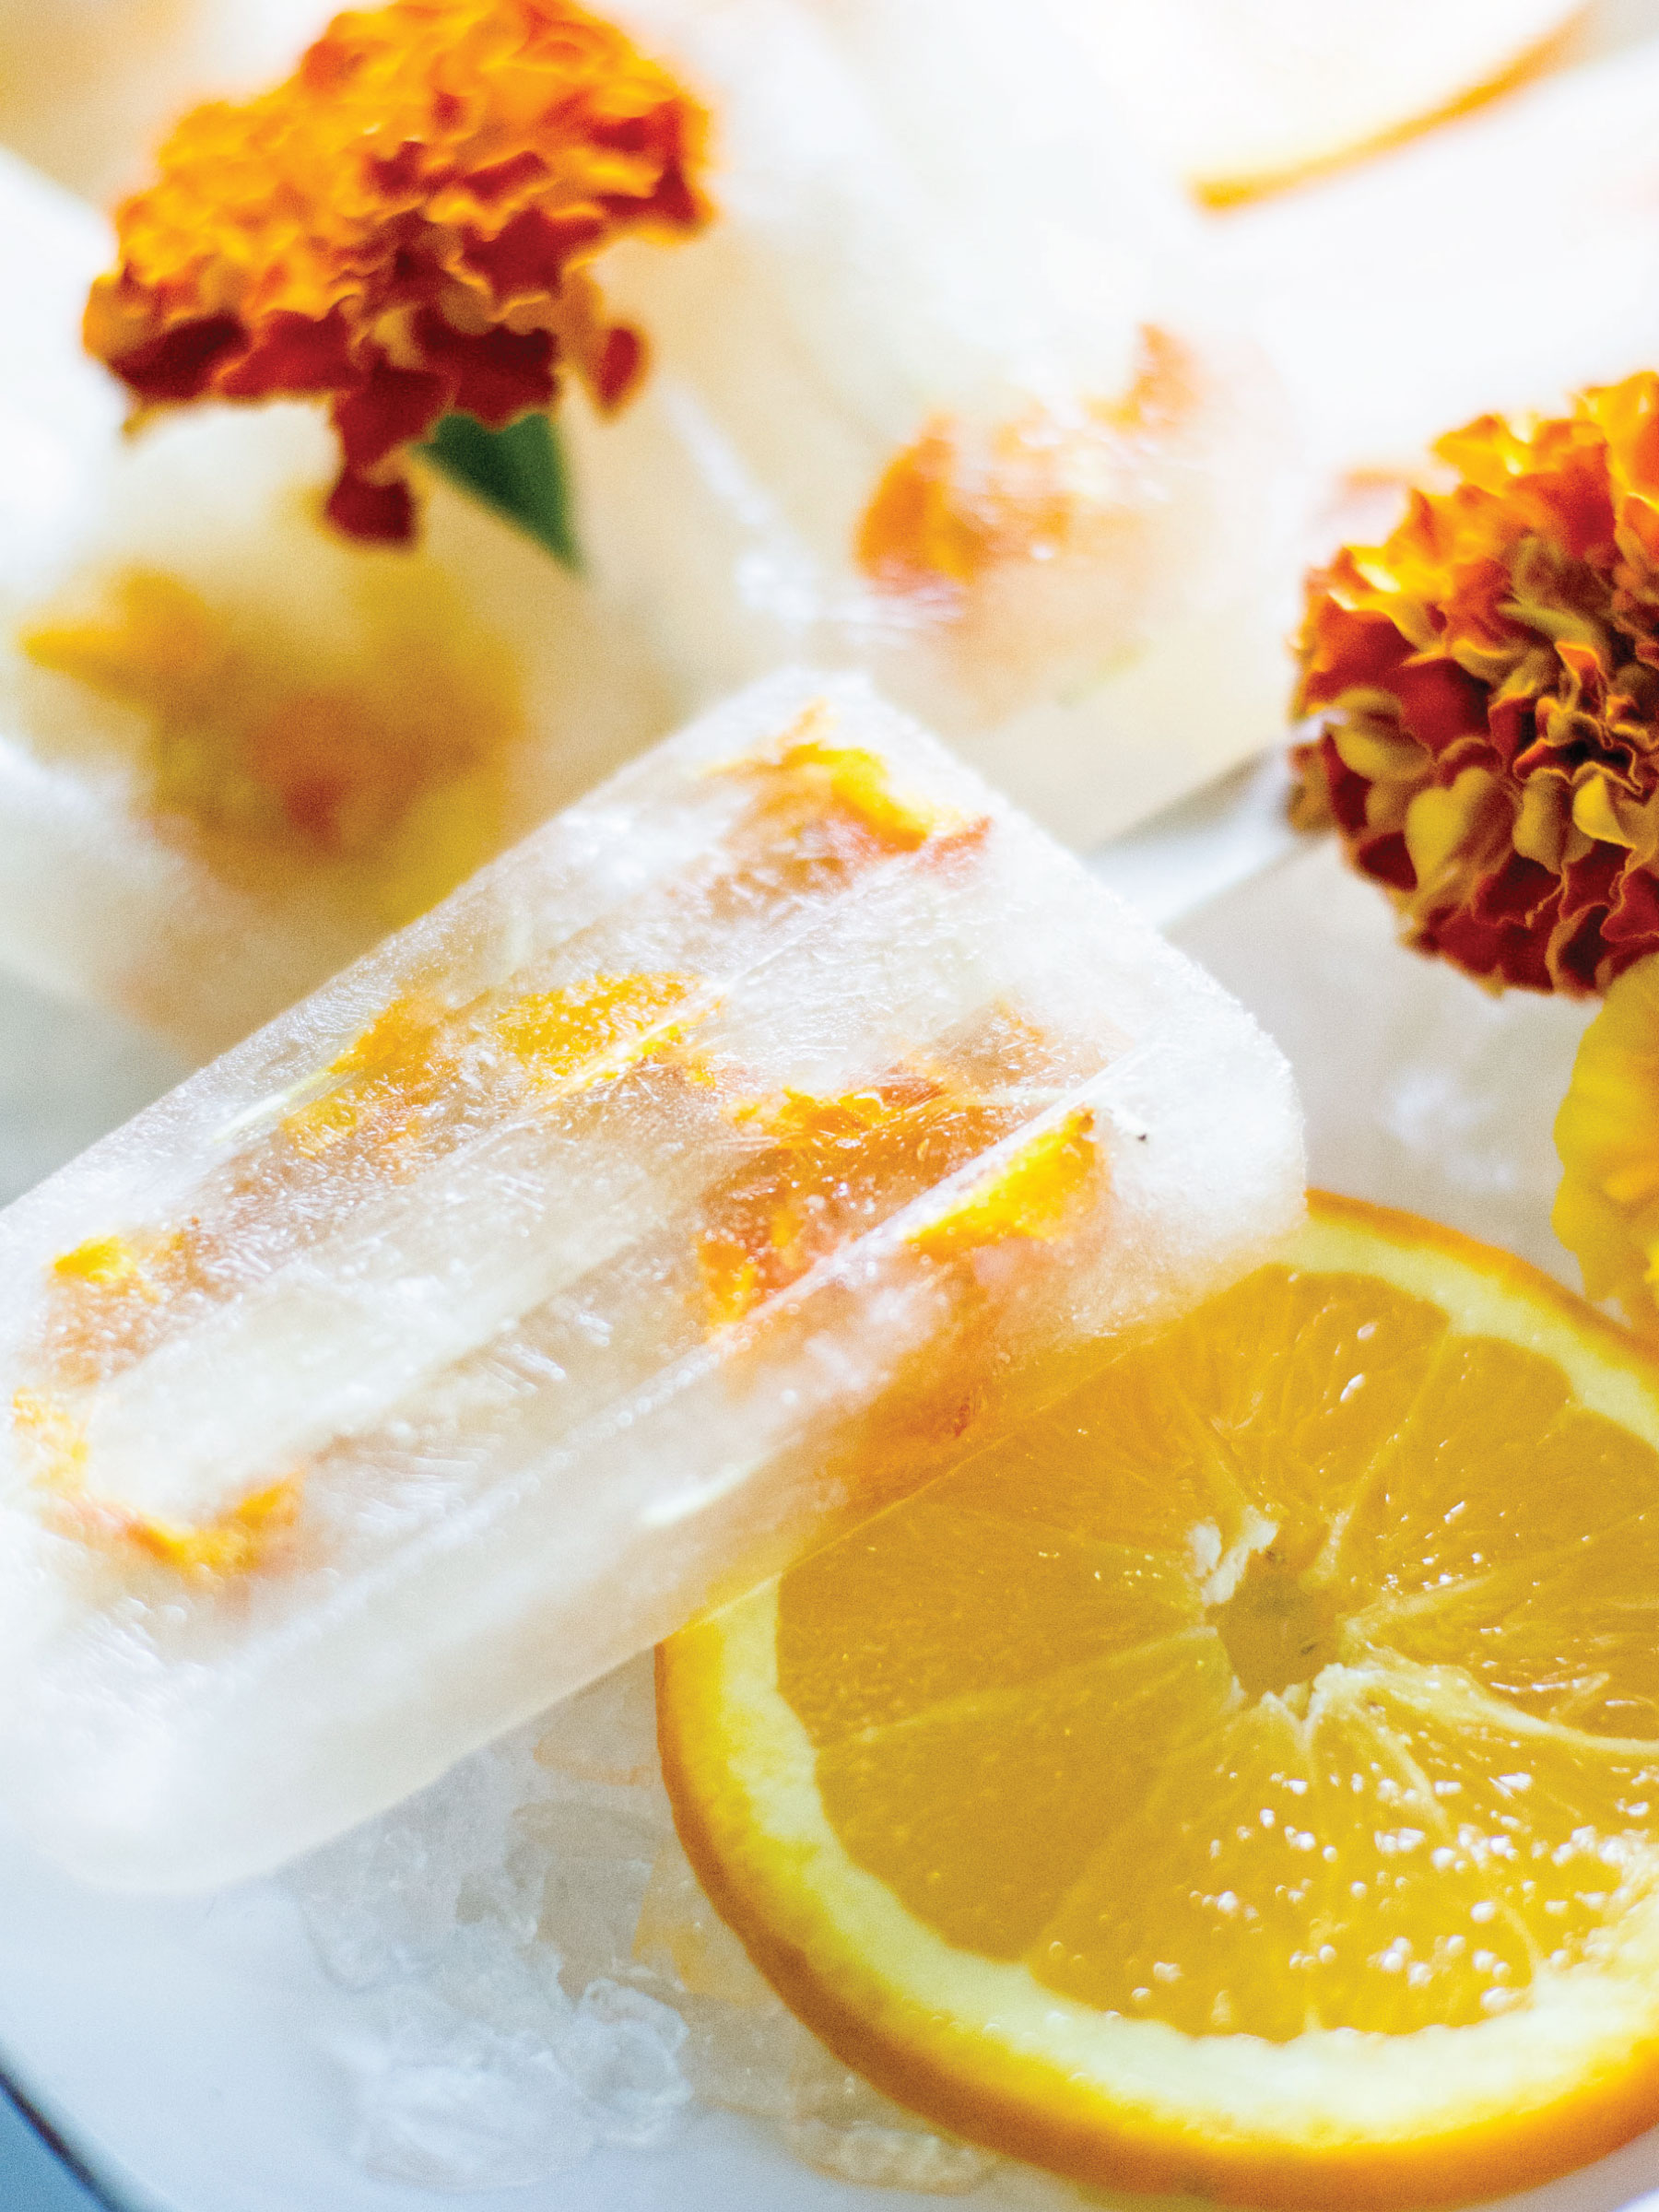 Citrus Marigold Popsicles by Sam Henderson of Today's Nest for HGTVGardens